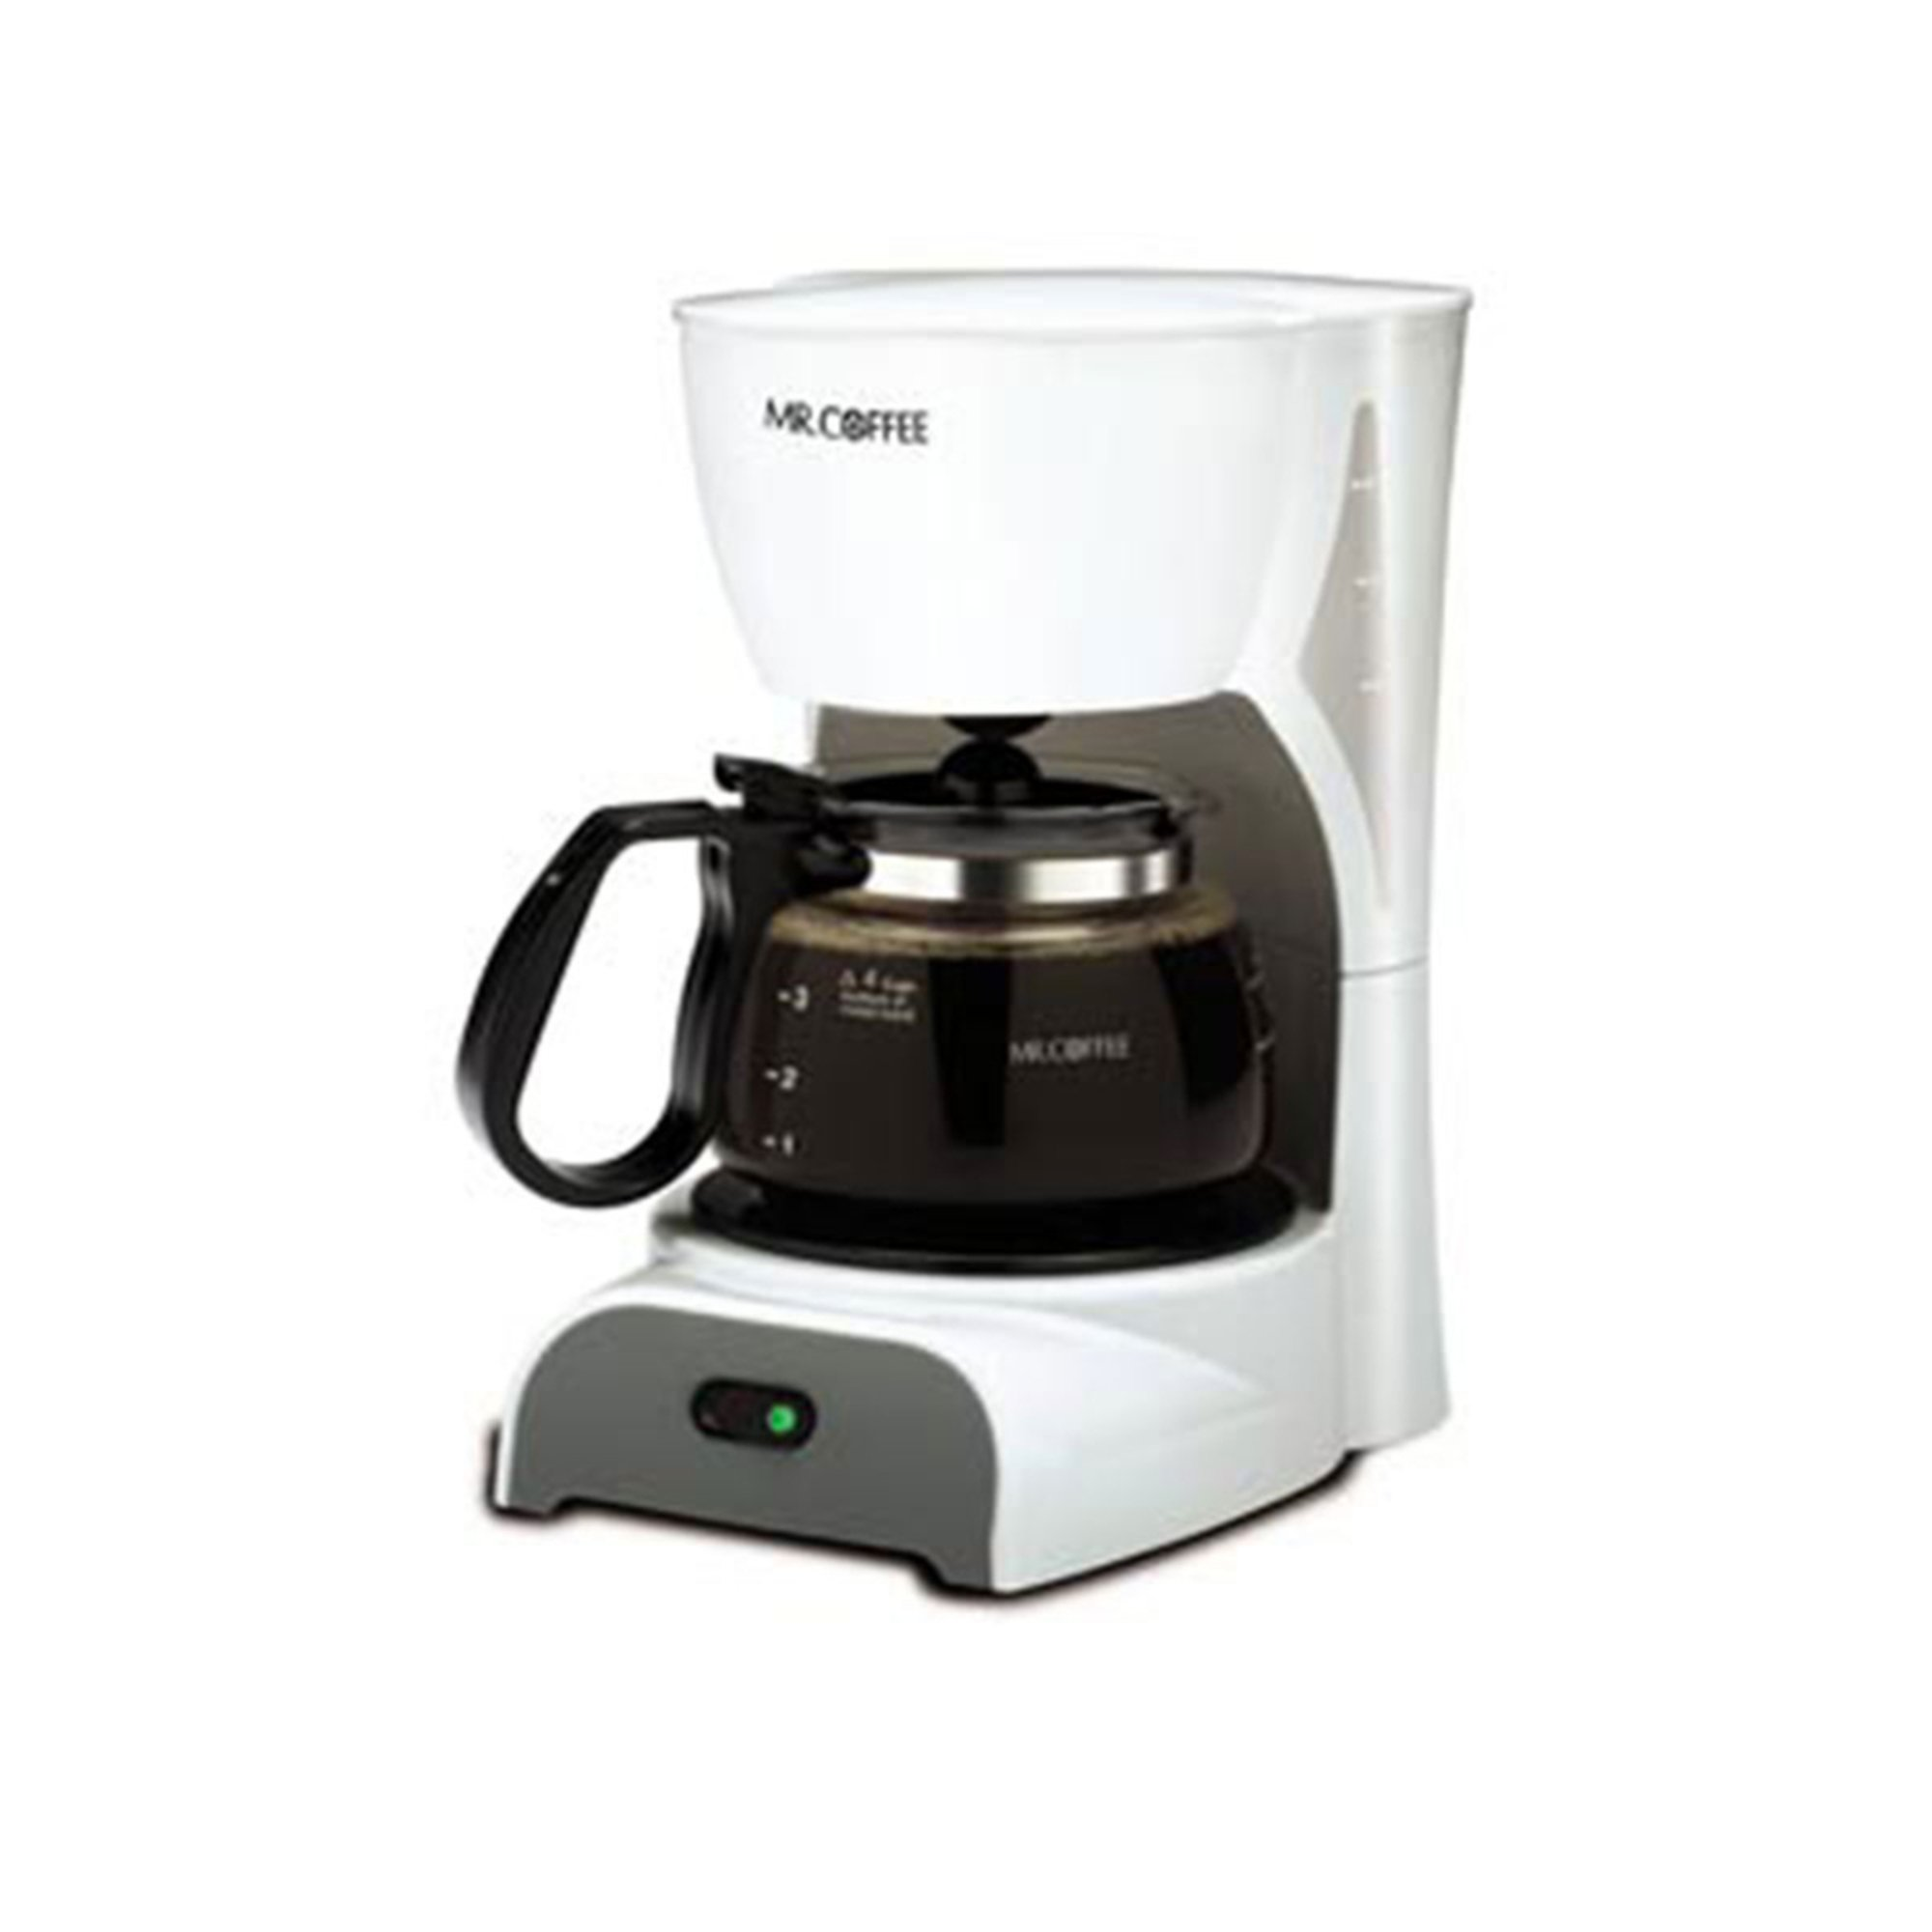 Mr. Coffee 4-cup Coffeemaker, White (dr4-np) Coffee Makers For The Home - Shop Your Navy ...